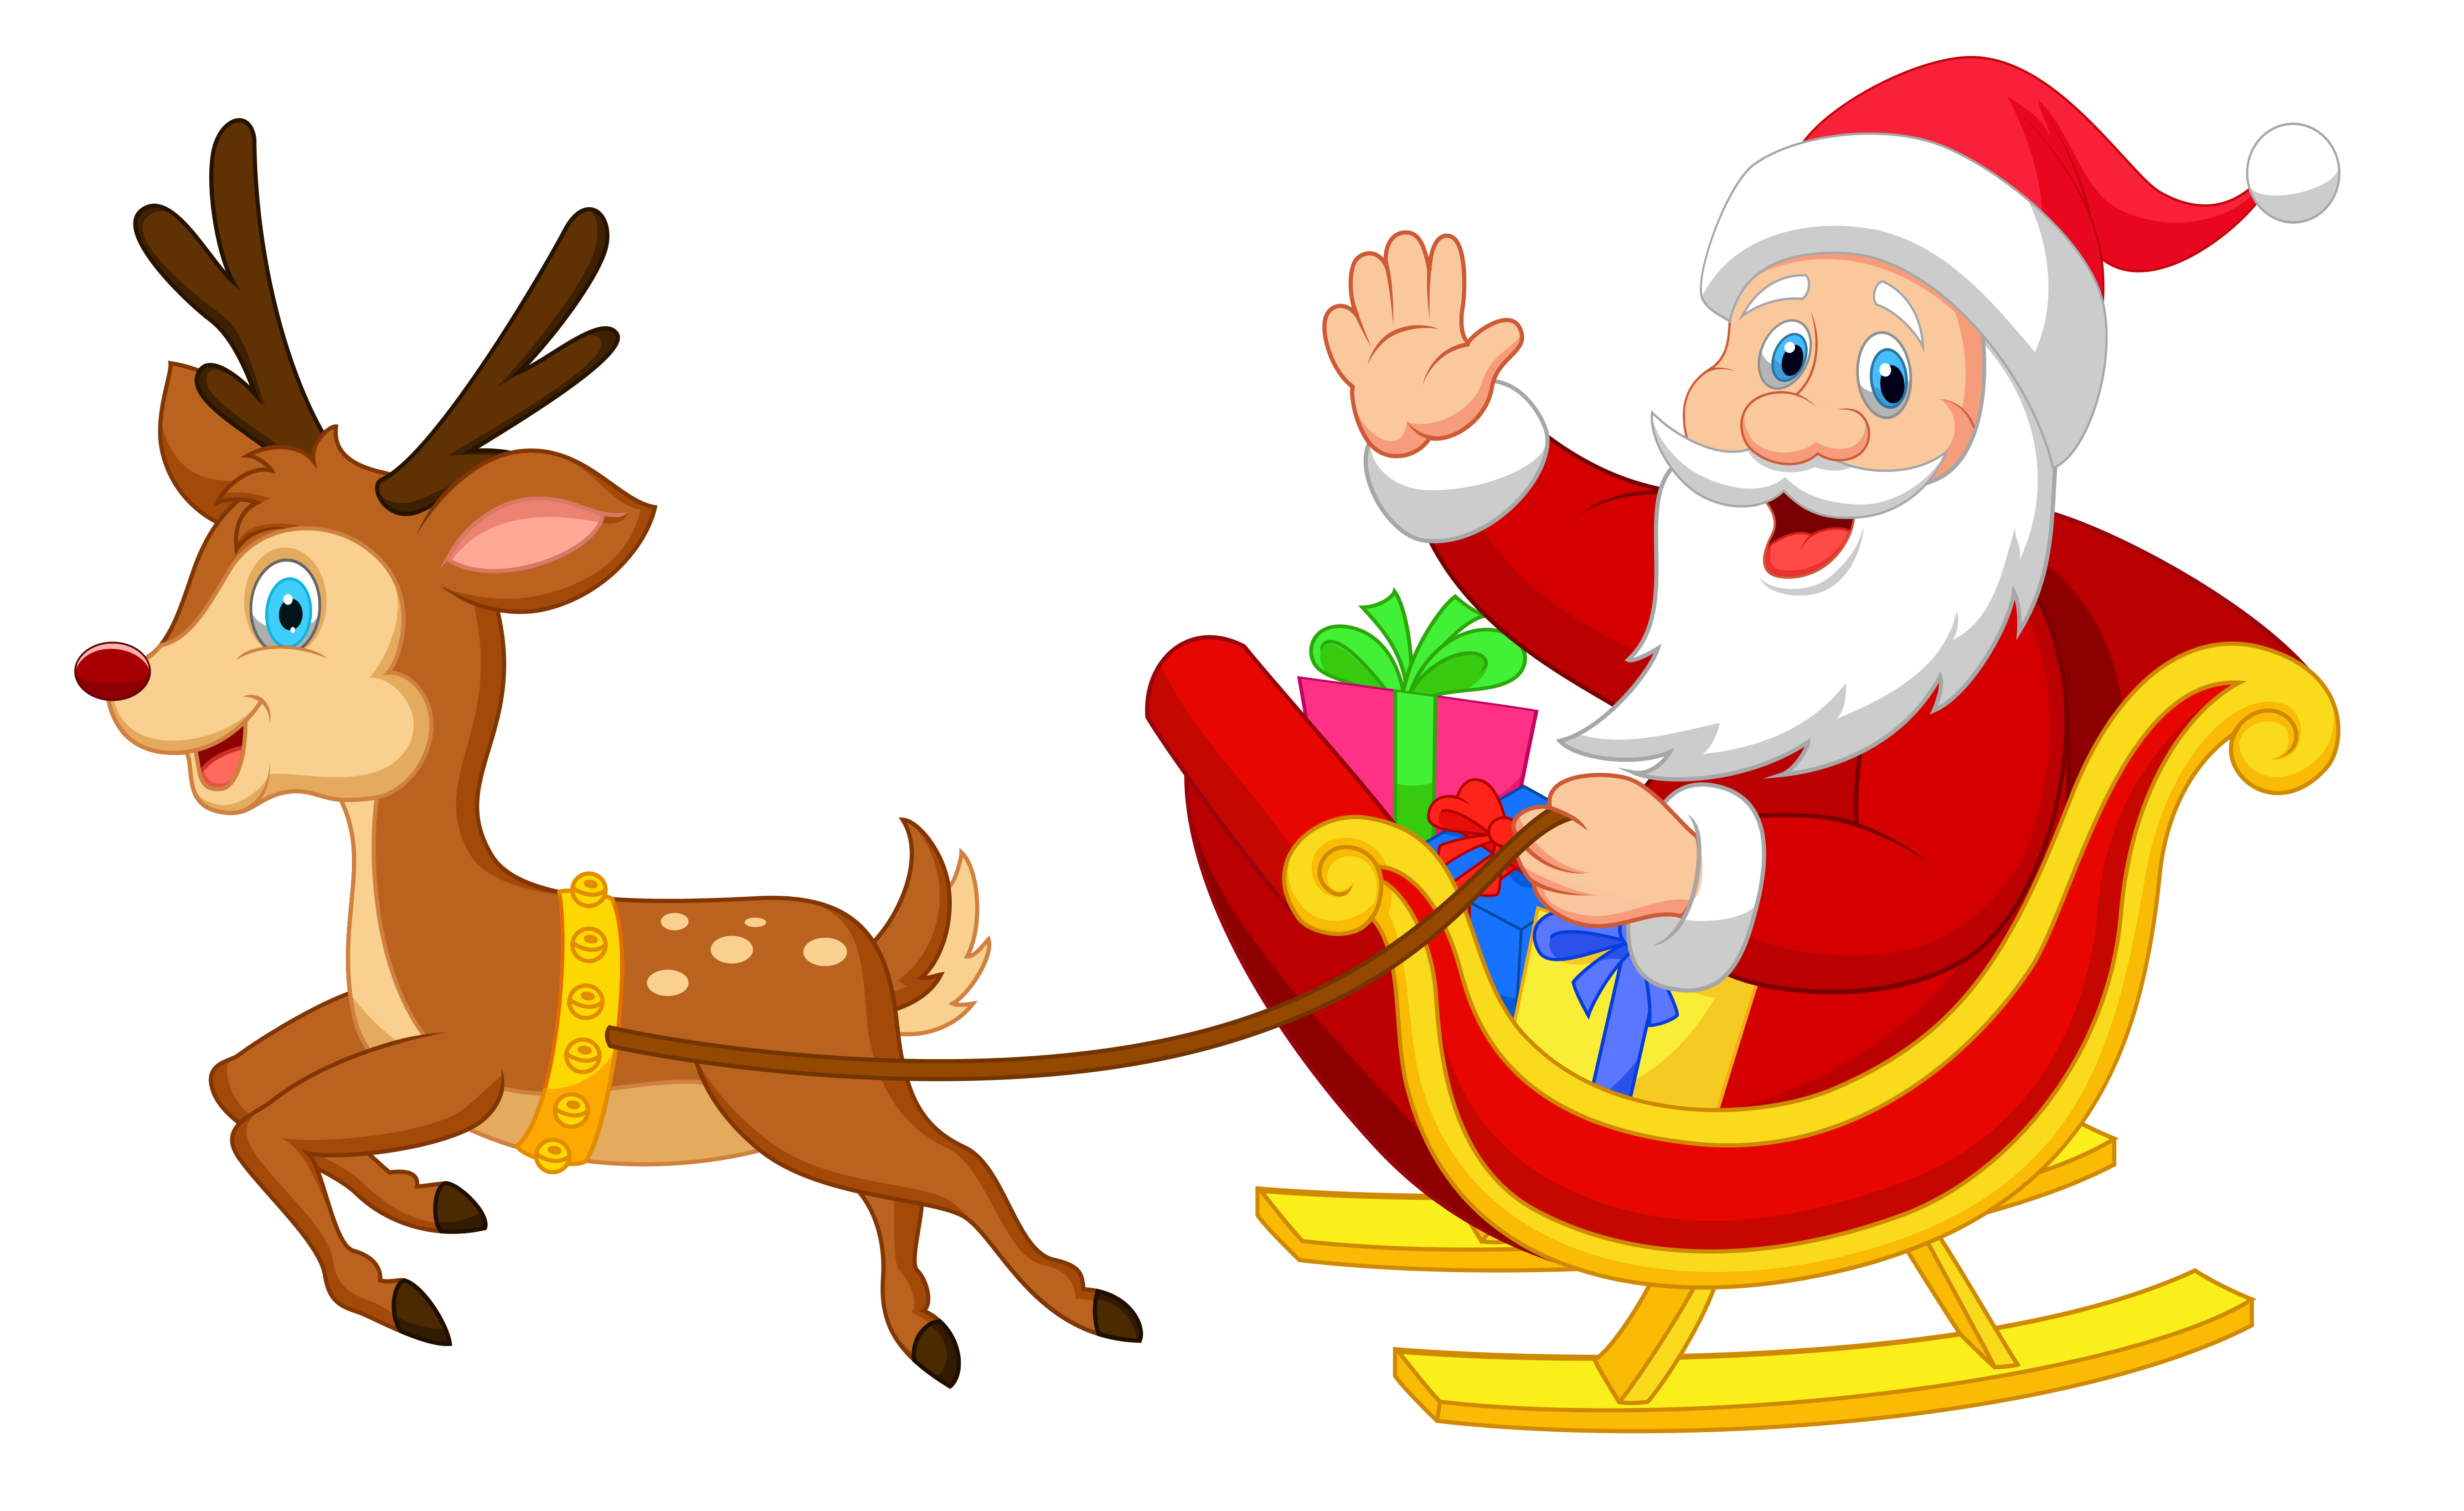 Transparent Santa with Rudolph PNG Clipa-Transparent Santa with Rudolph PNG Clipart-9